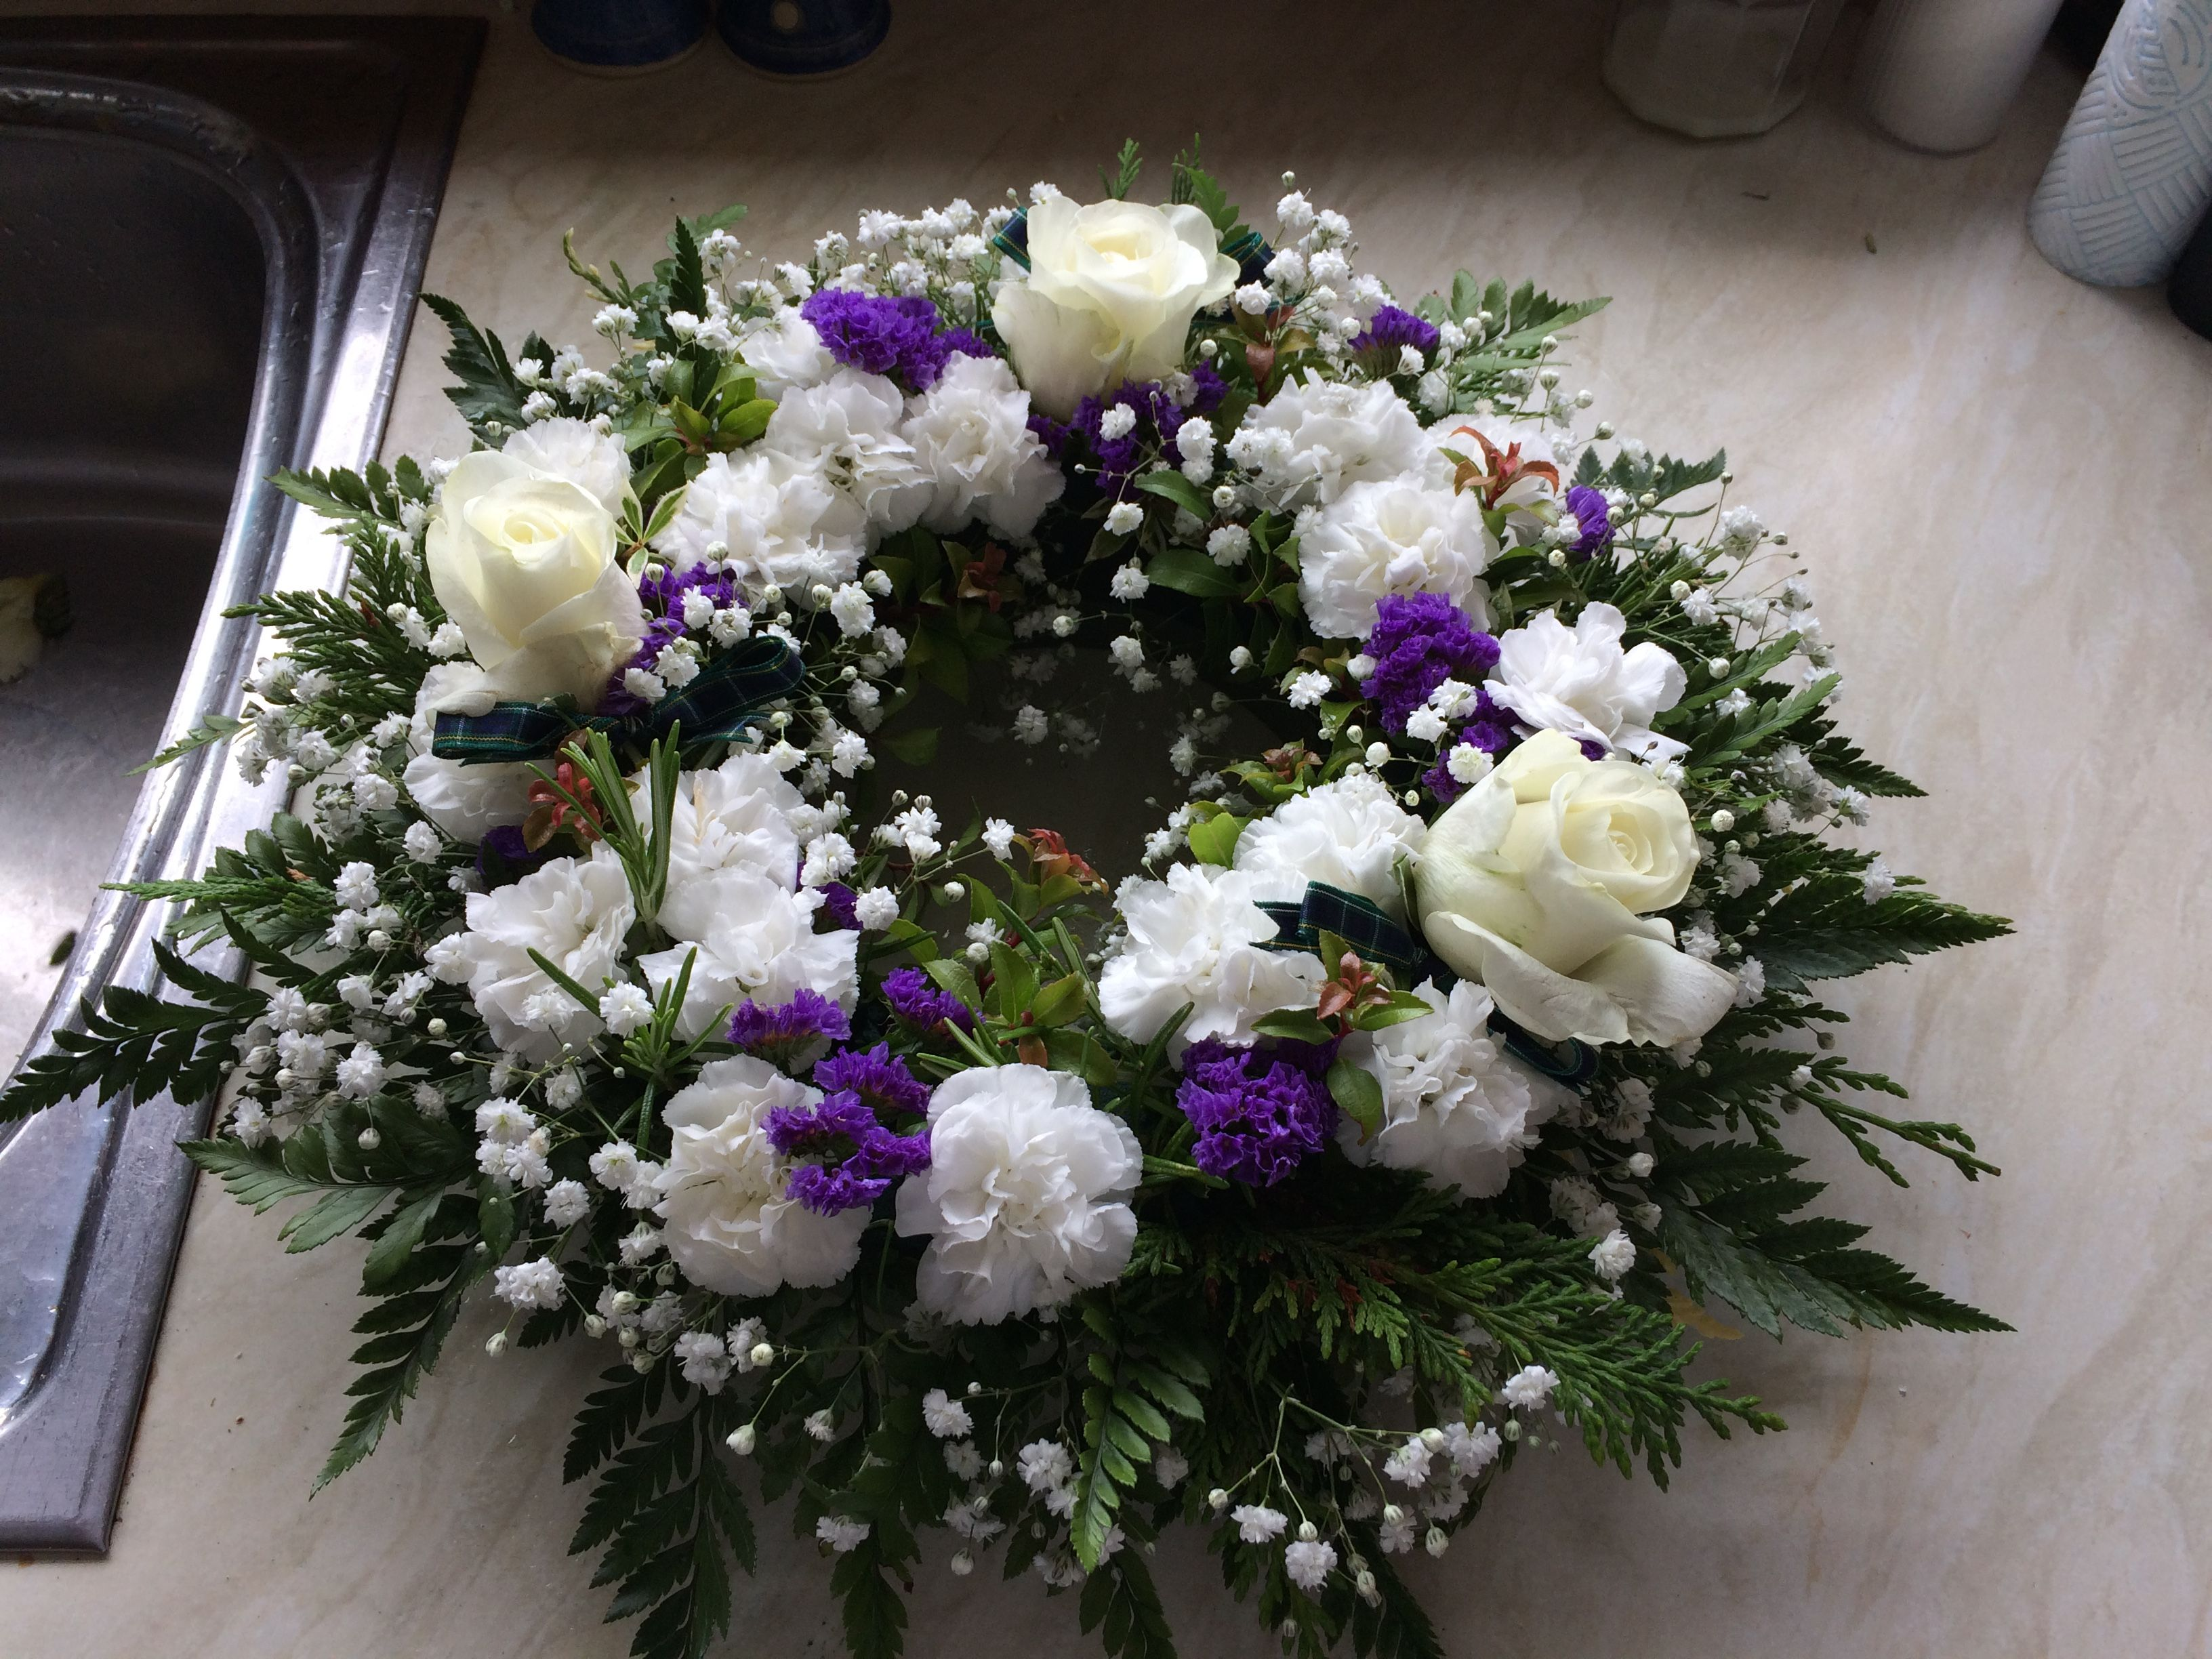 Scottish funeral wreath with carnations hearts and flowers scottish funeral wreath with carnations funeral carnations most beautiful wreaths garlands izmirmasajfo